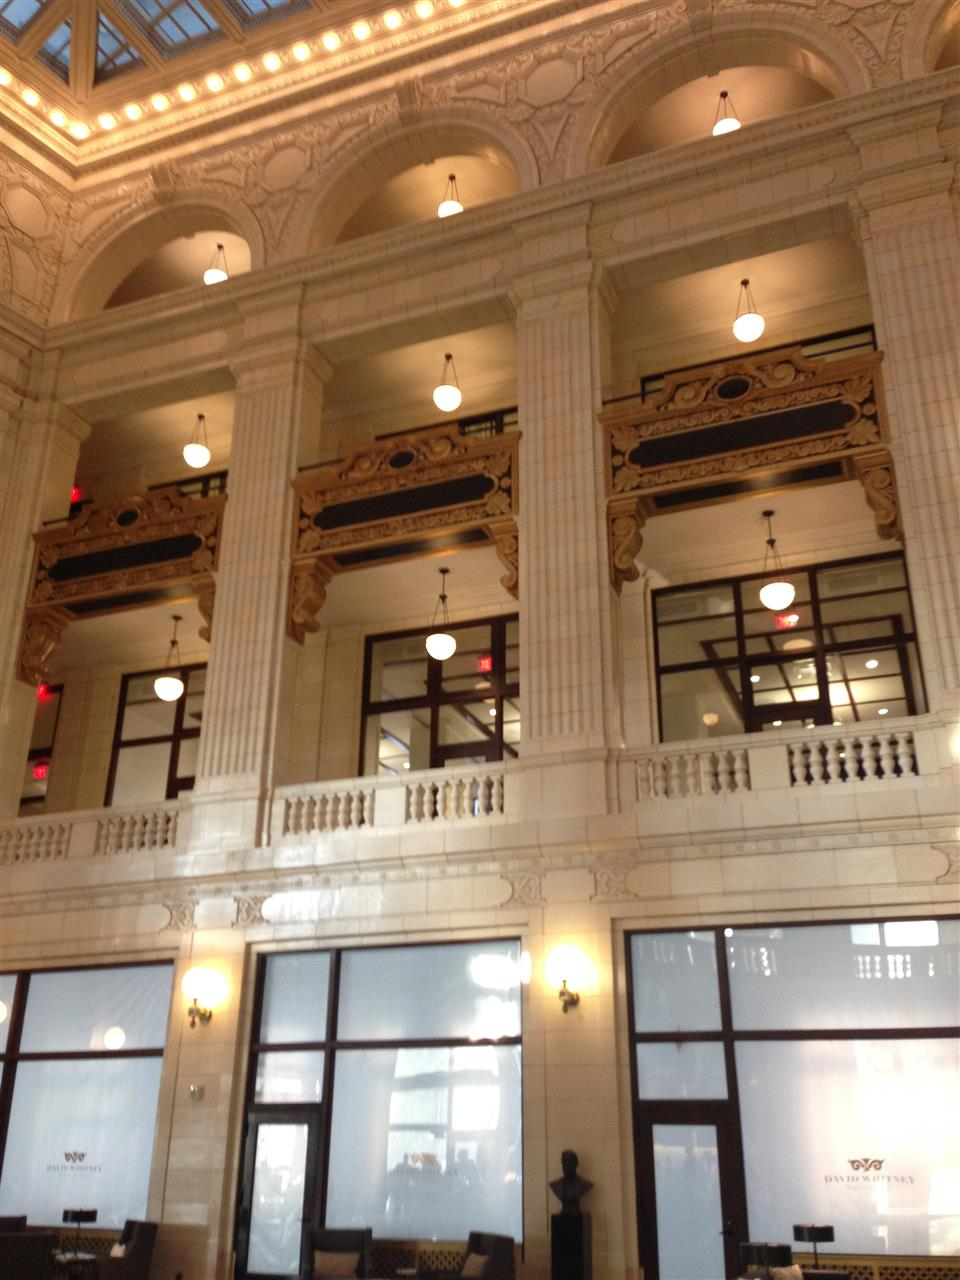 The restored David Whitney Building lobby. The David Whitney Building is a historic class-A skyscraper located within the Grand Circus Park Historic District ~ Detroit, Michigan #LeadingRElocal #Detroit #Michigan